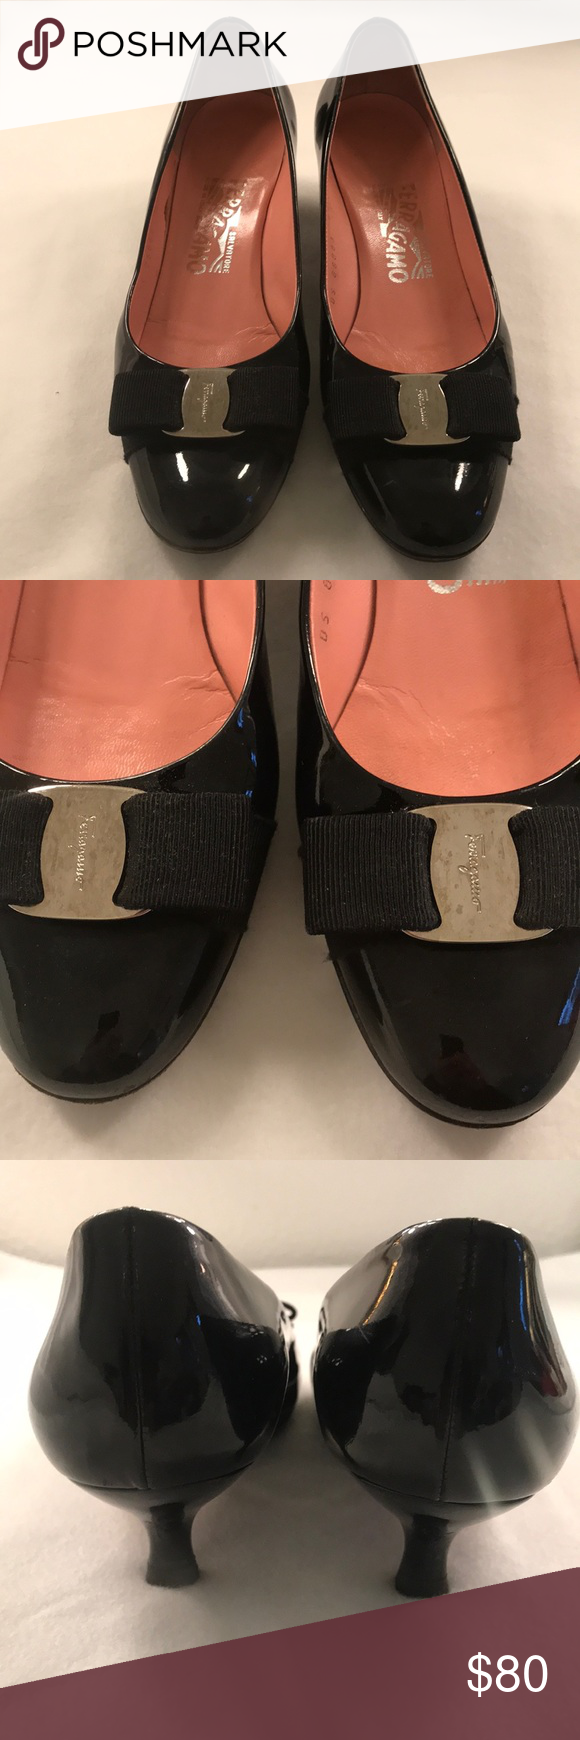 Ferraramo Black Leather Kitten Heels Size 6 Kitten Heels Black Leather Ferragamo Shoes